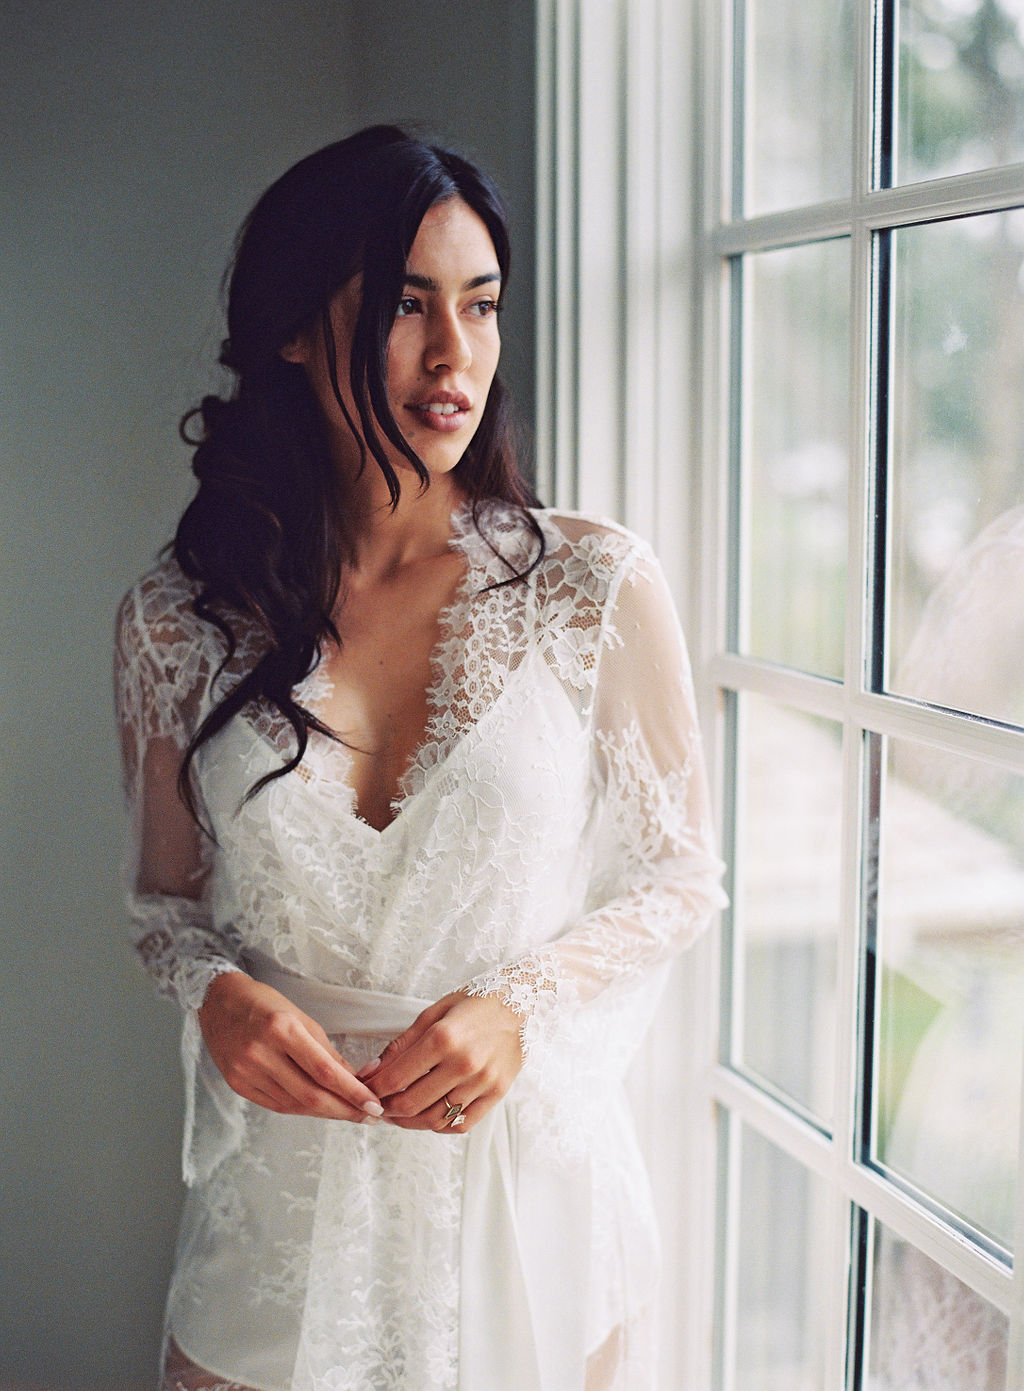 Lingerie photoshoot bridal robe french lace robe girl and a serious dream